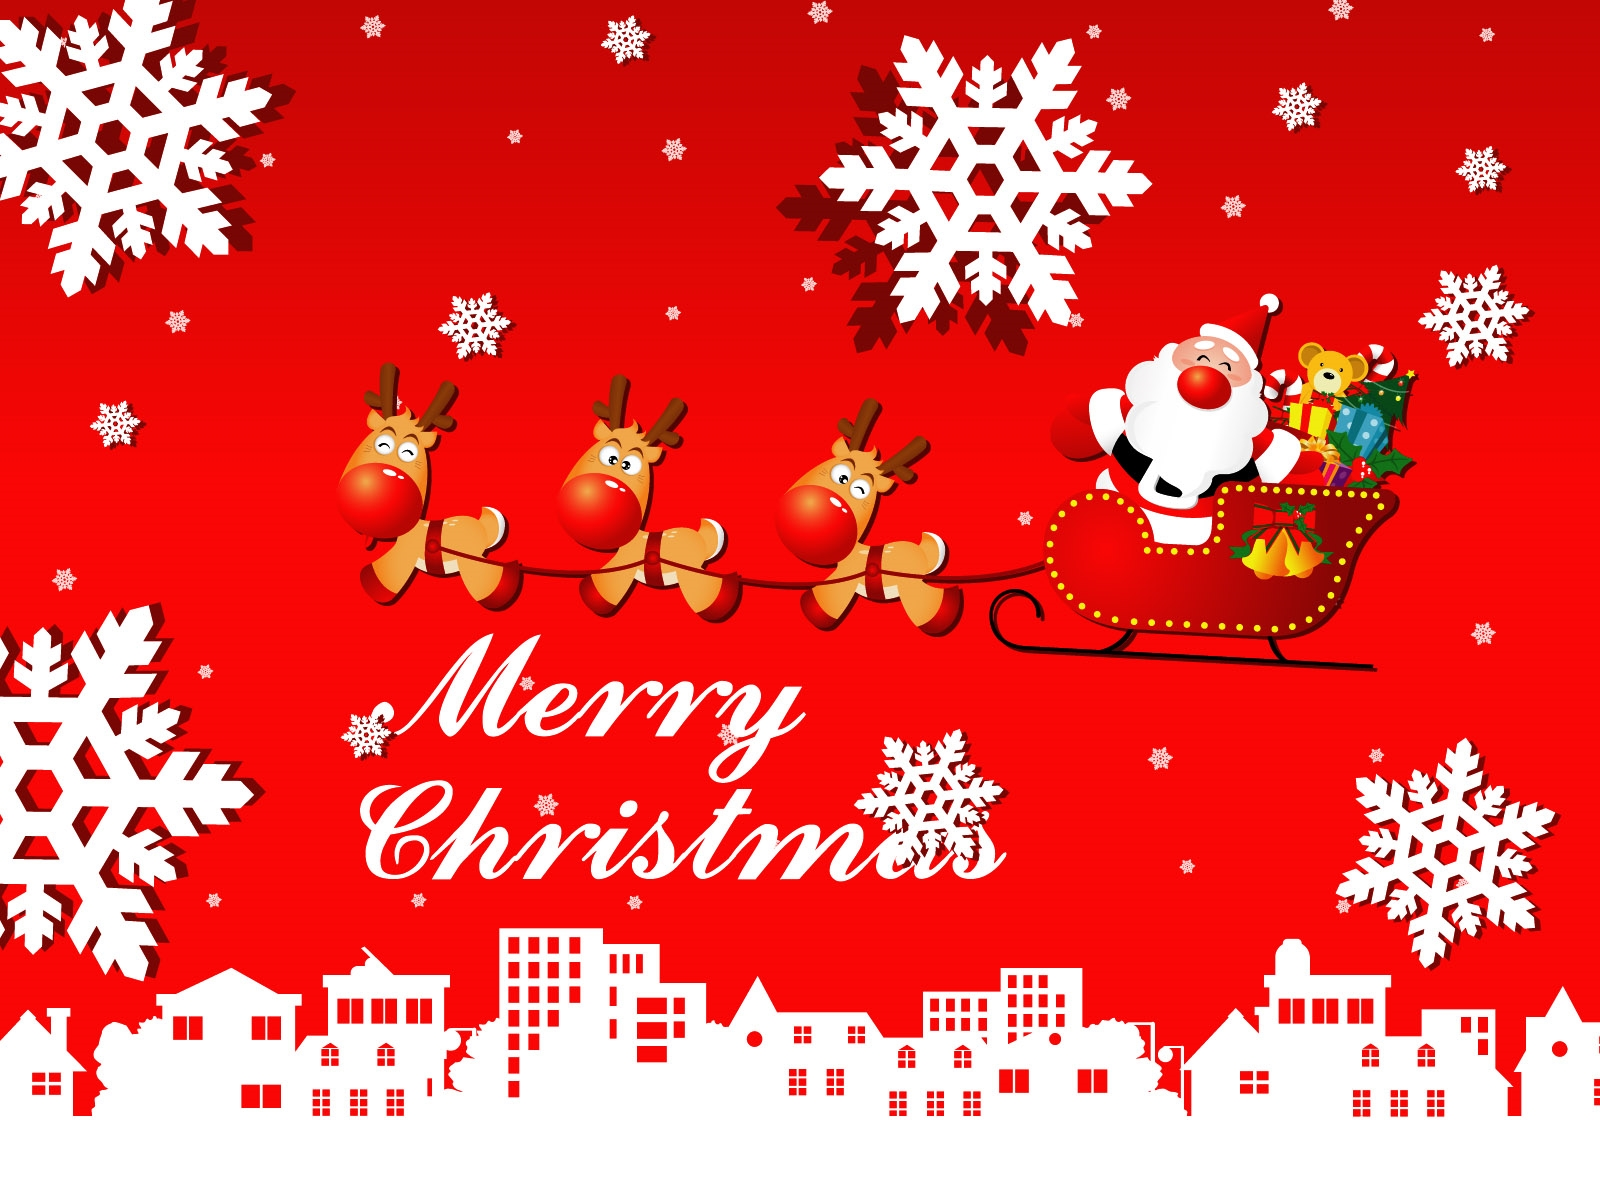 Merry Christmas And Happy New Year 2013 Wallpapers